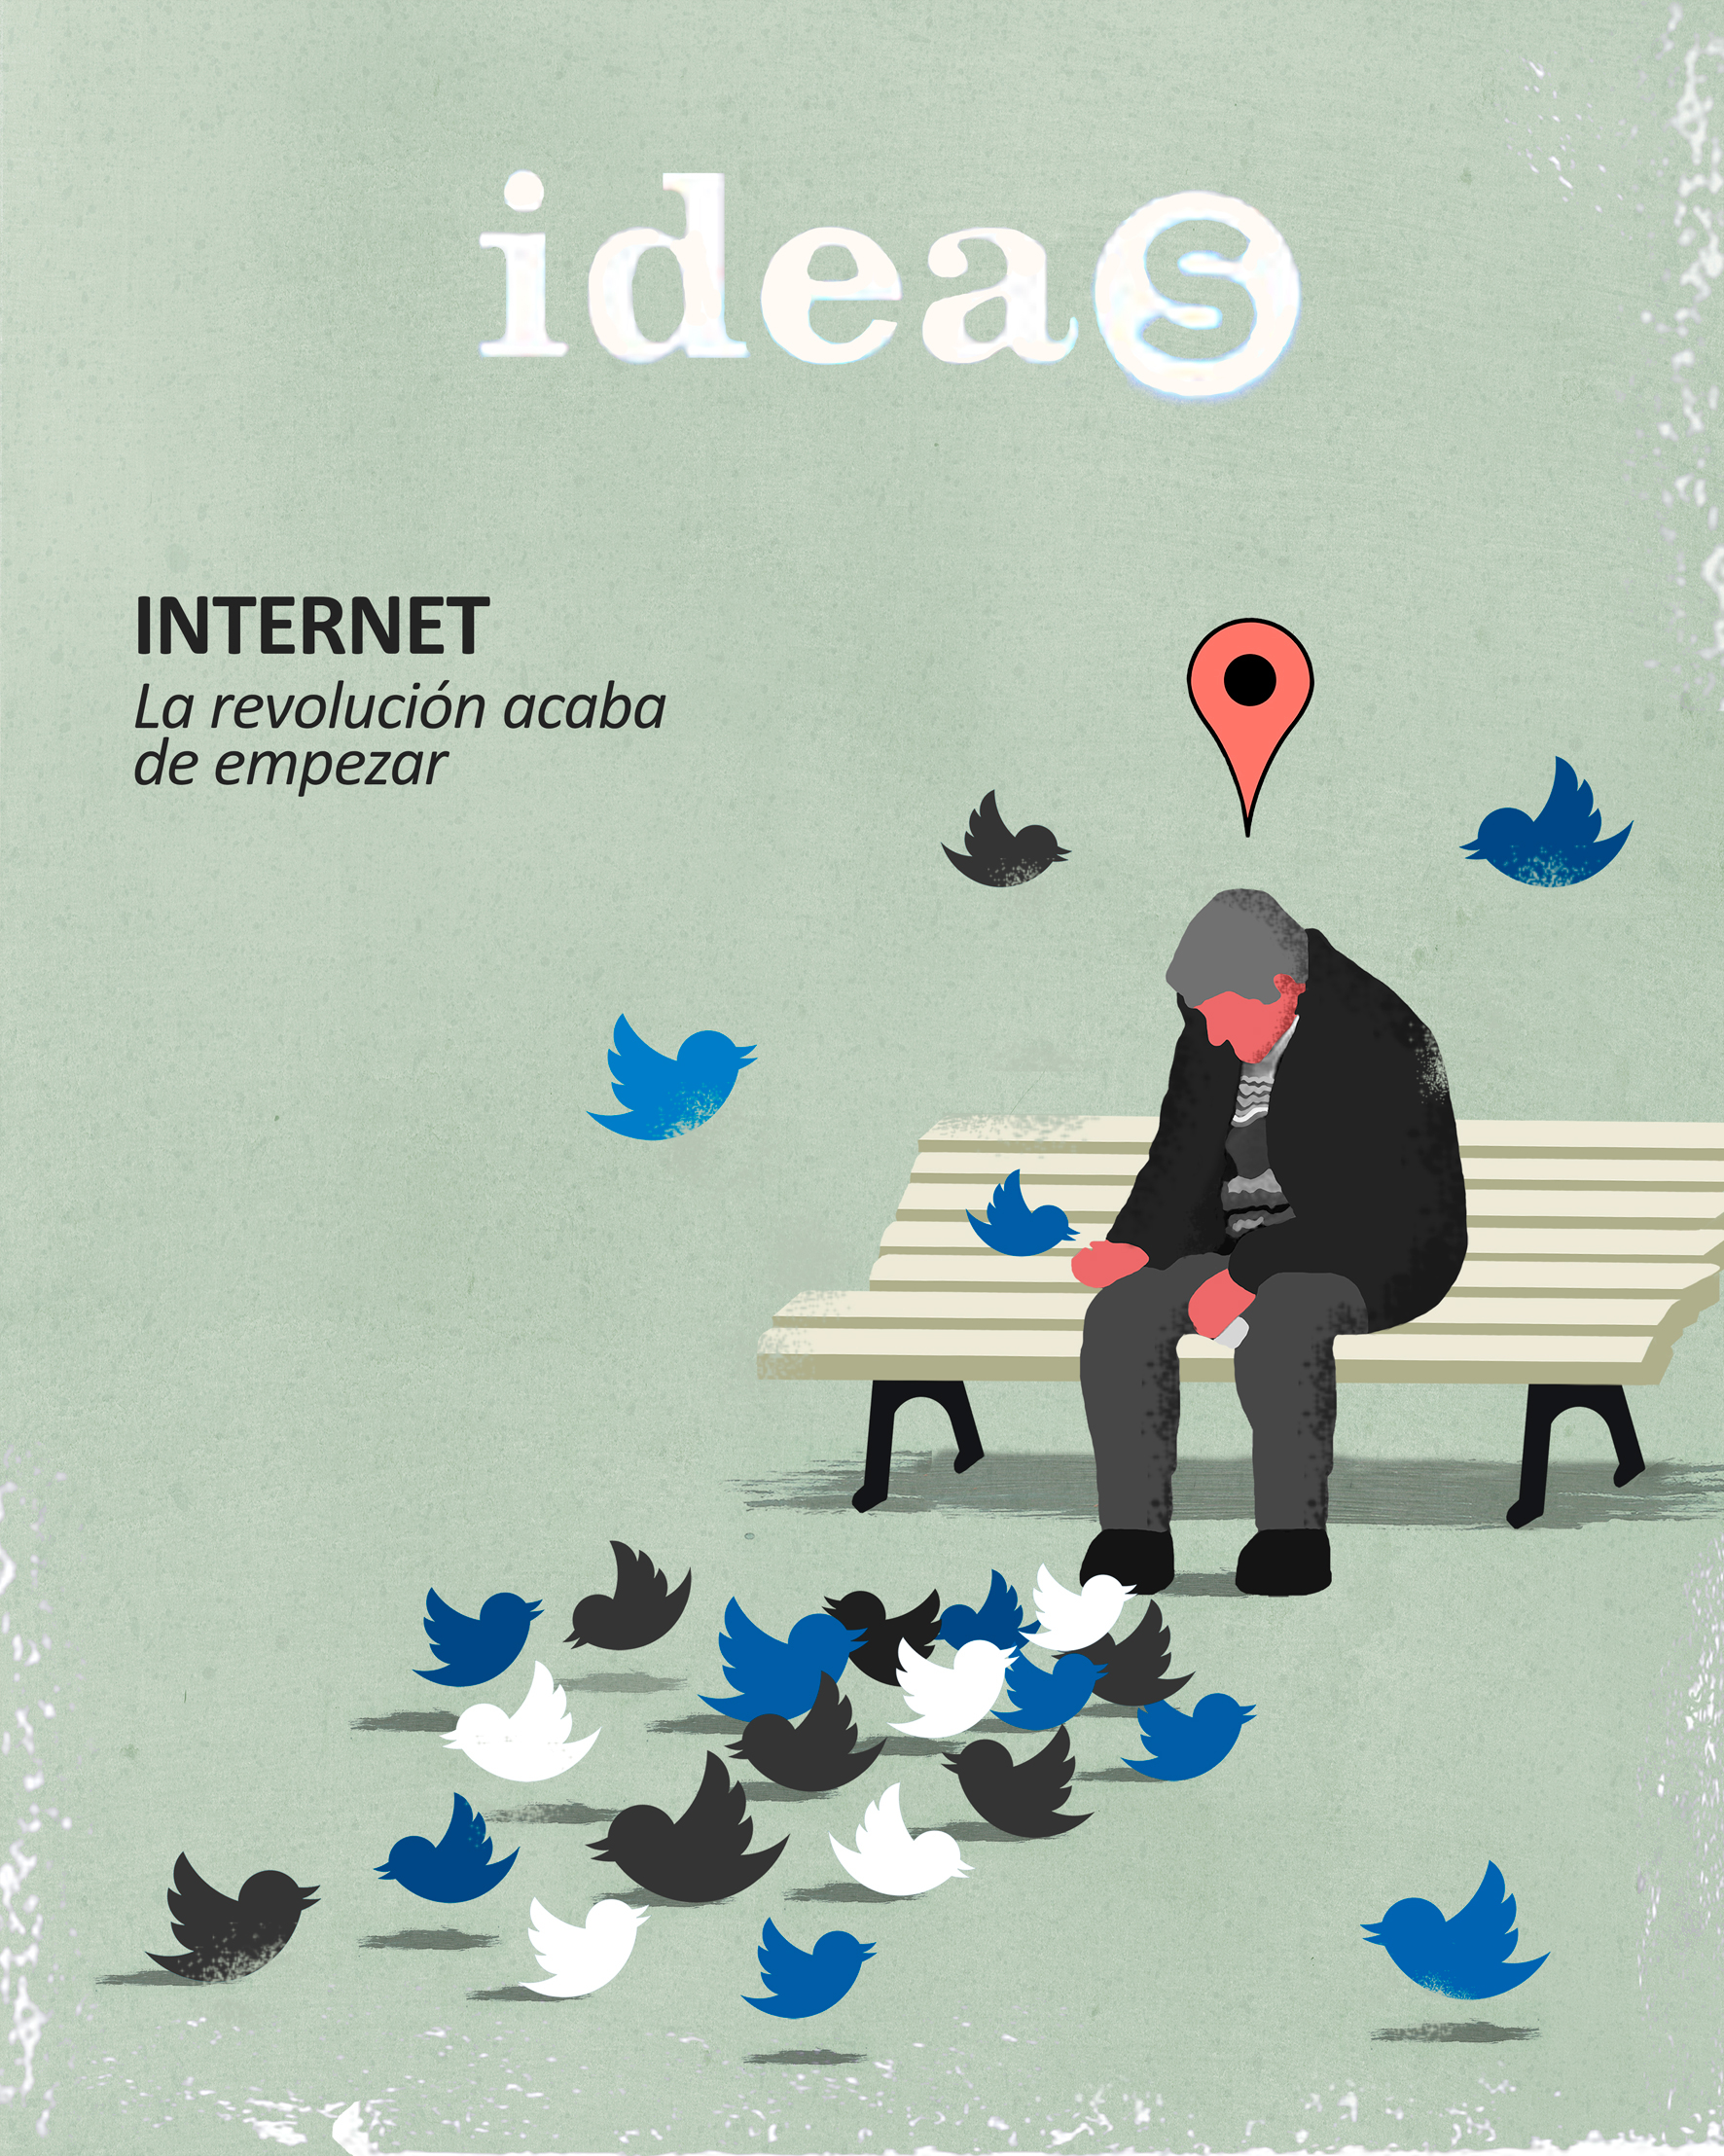 Cover-for-El-Pais-(Ideas)-Internet.jpg